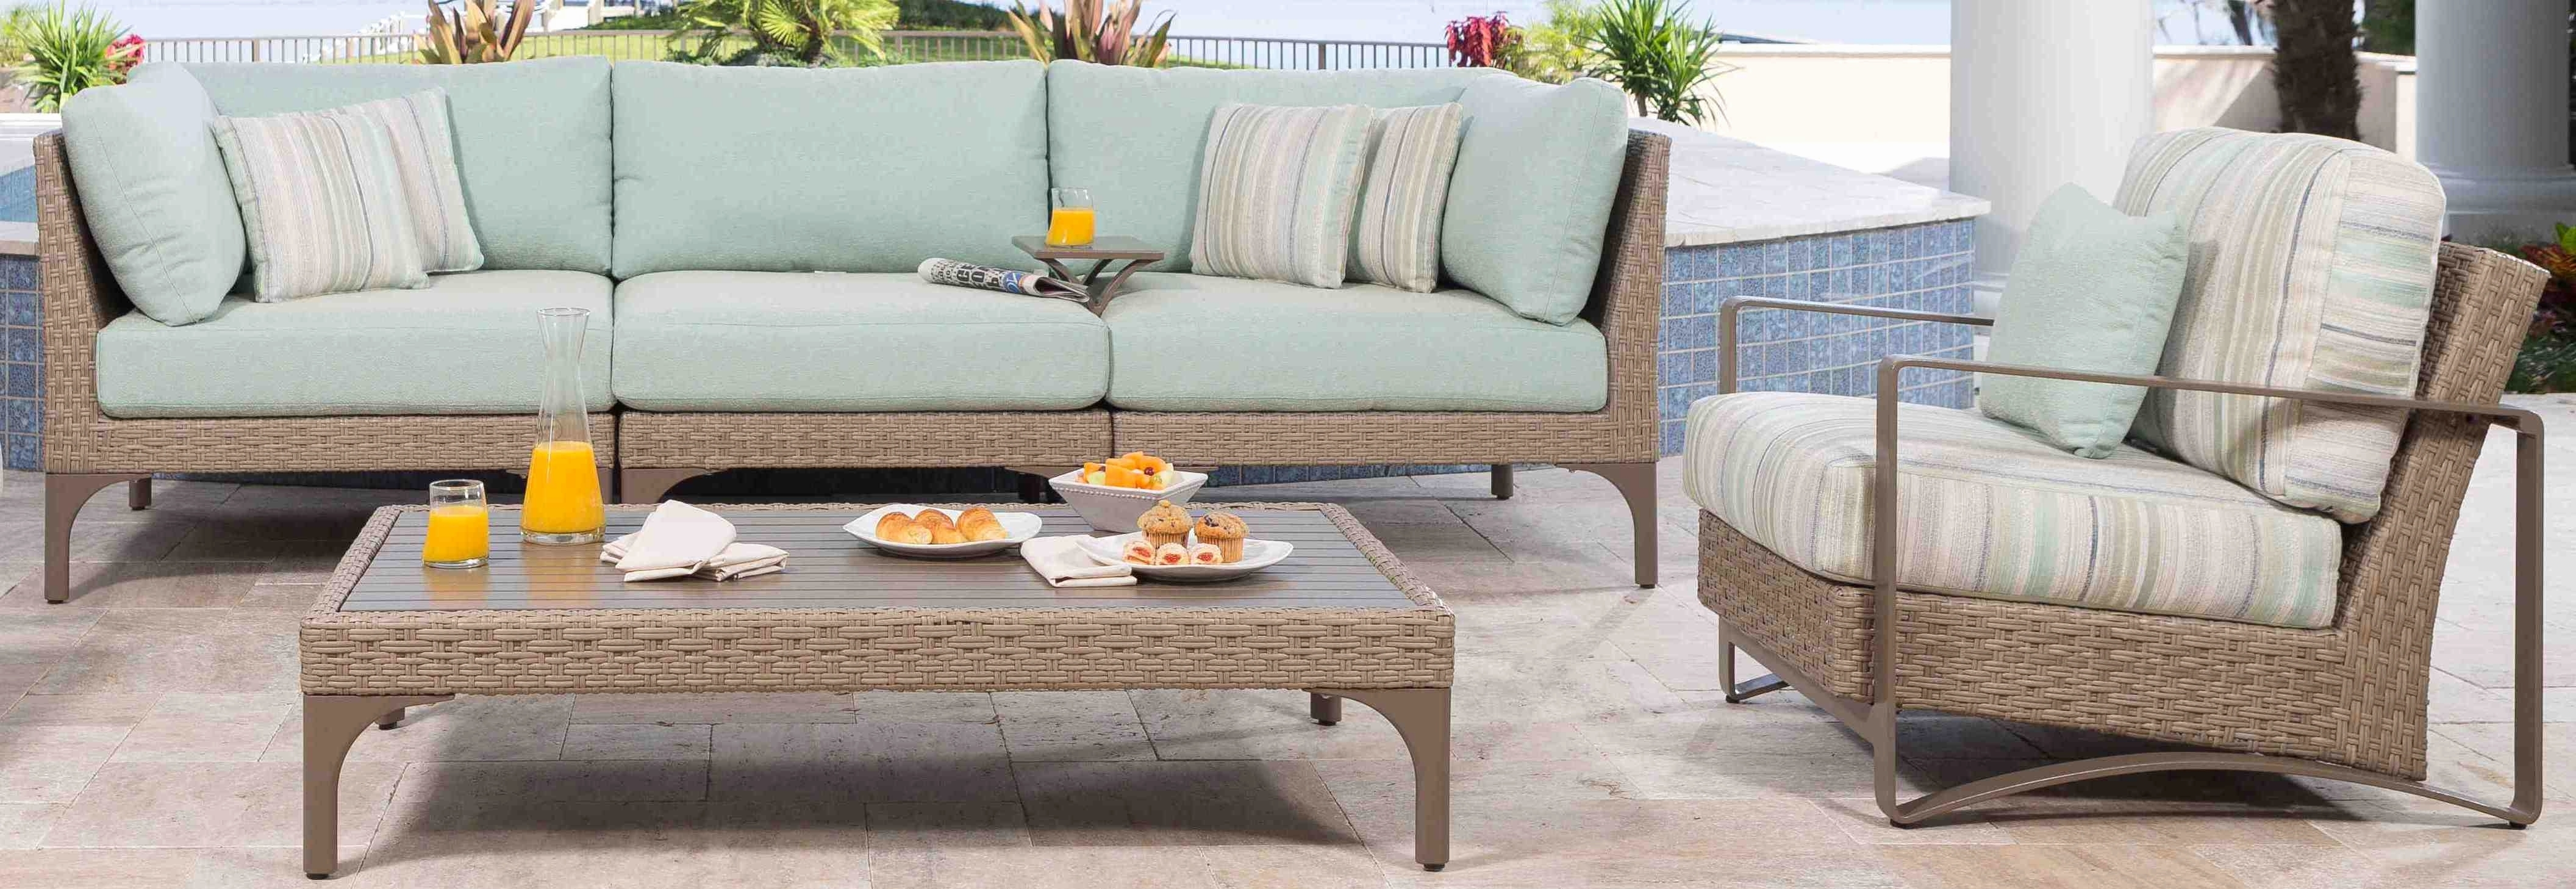 Newest Nfm Patio Conversation Sets In Ebel Patio Furniture (View 12 of 20)